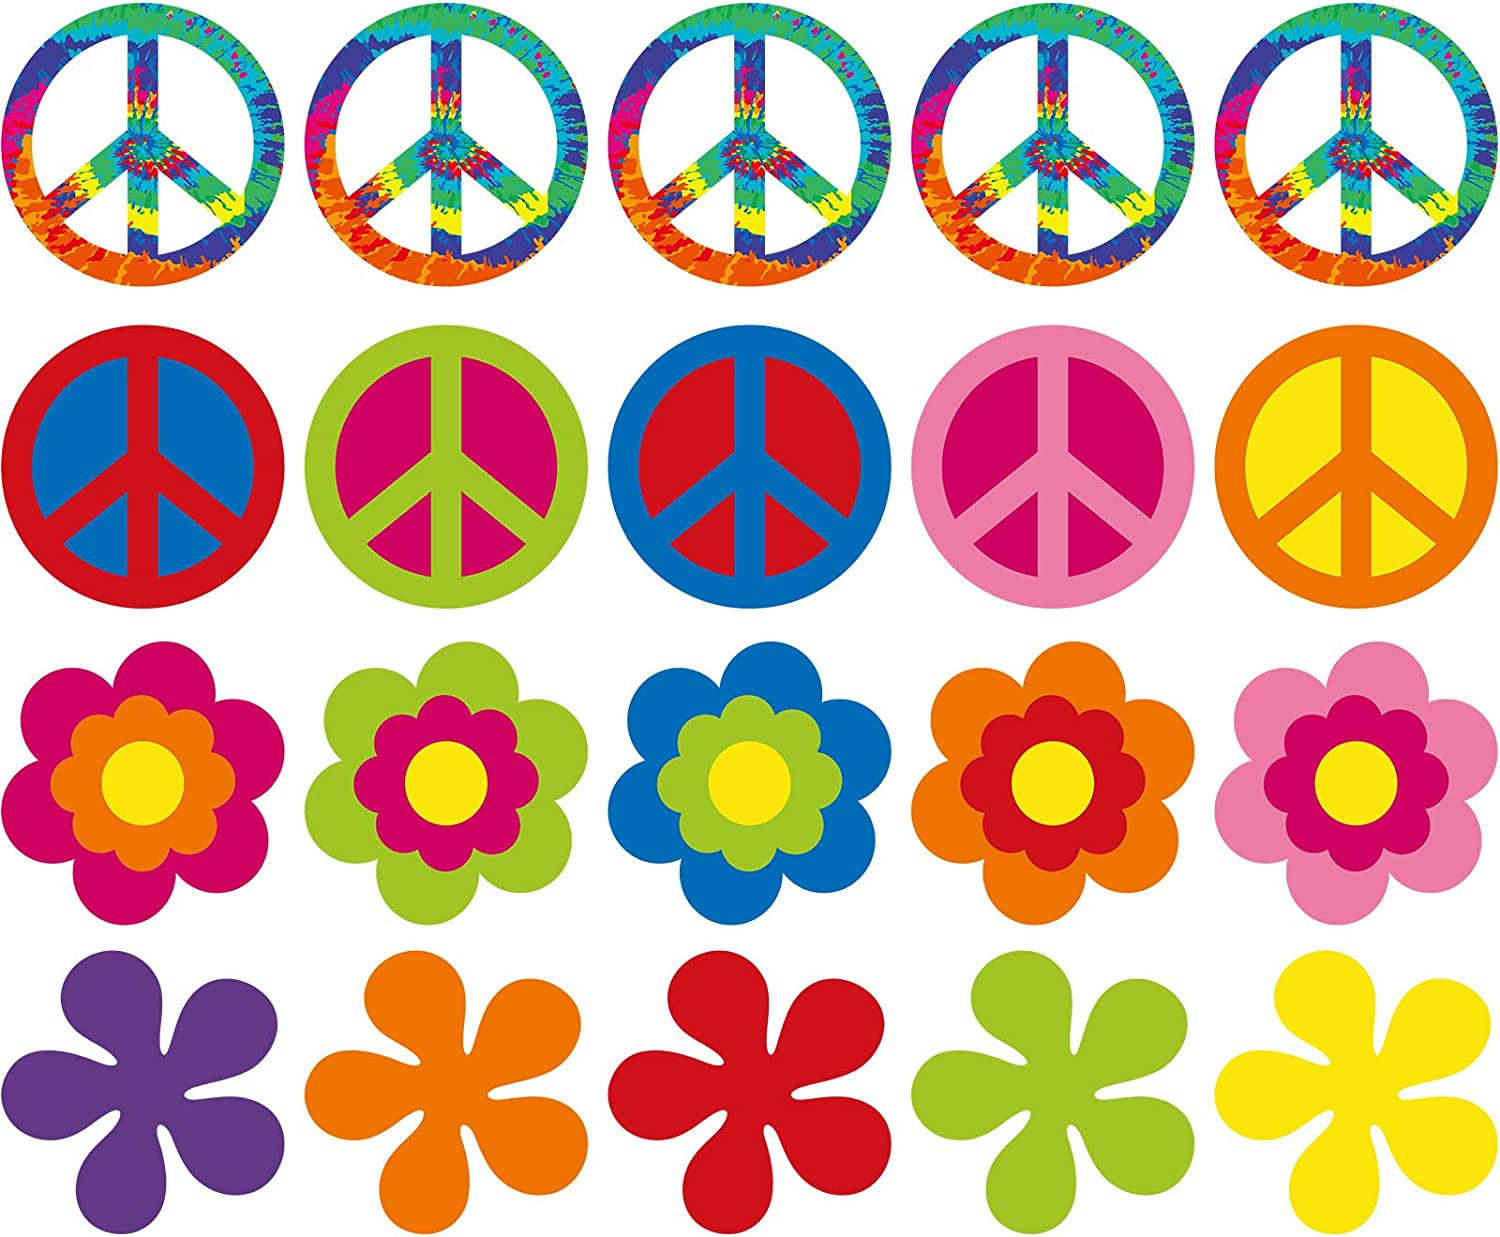 20 Pieces 60's Party Cutout 60's Groovy Party Cut-Outs Decoration Retro Flower Cutouts Peace Sign Cutouts with Glue Point Dots for 60's Theme Party Decorations, 7.9 x 7.9 Inch